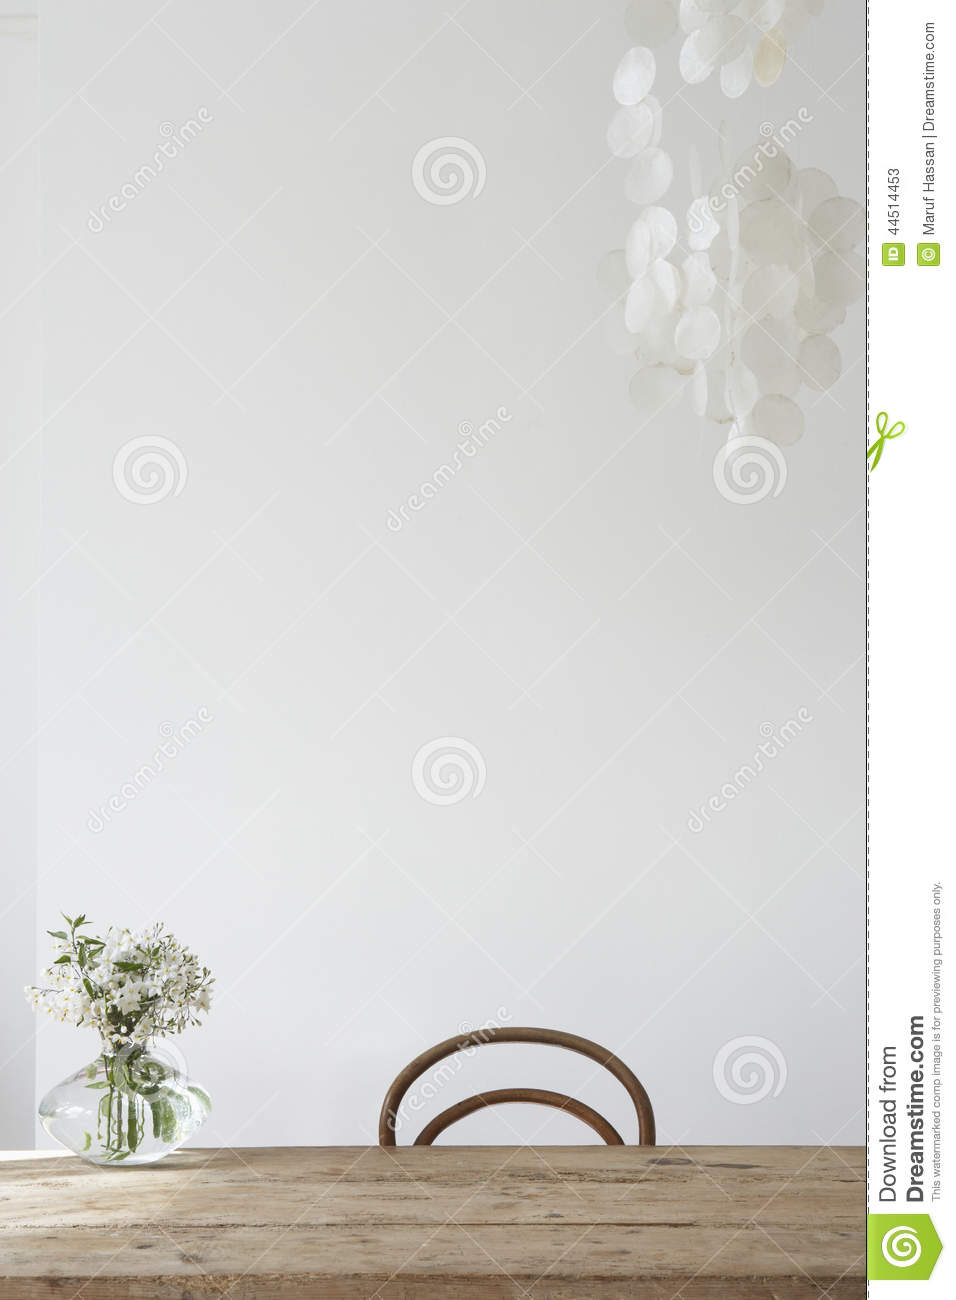 Flower vase on the top pf the table